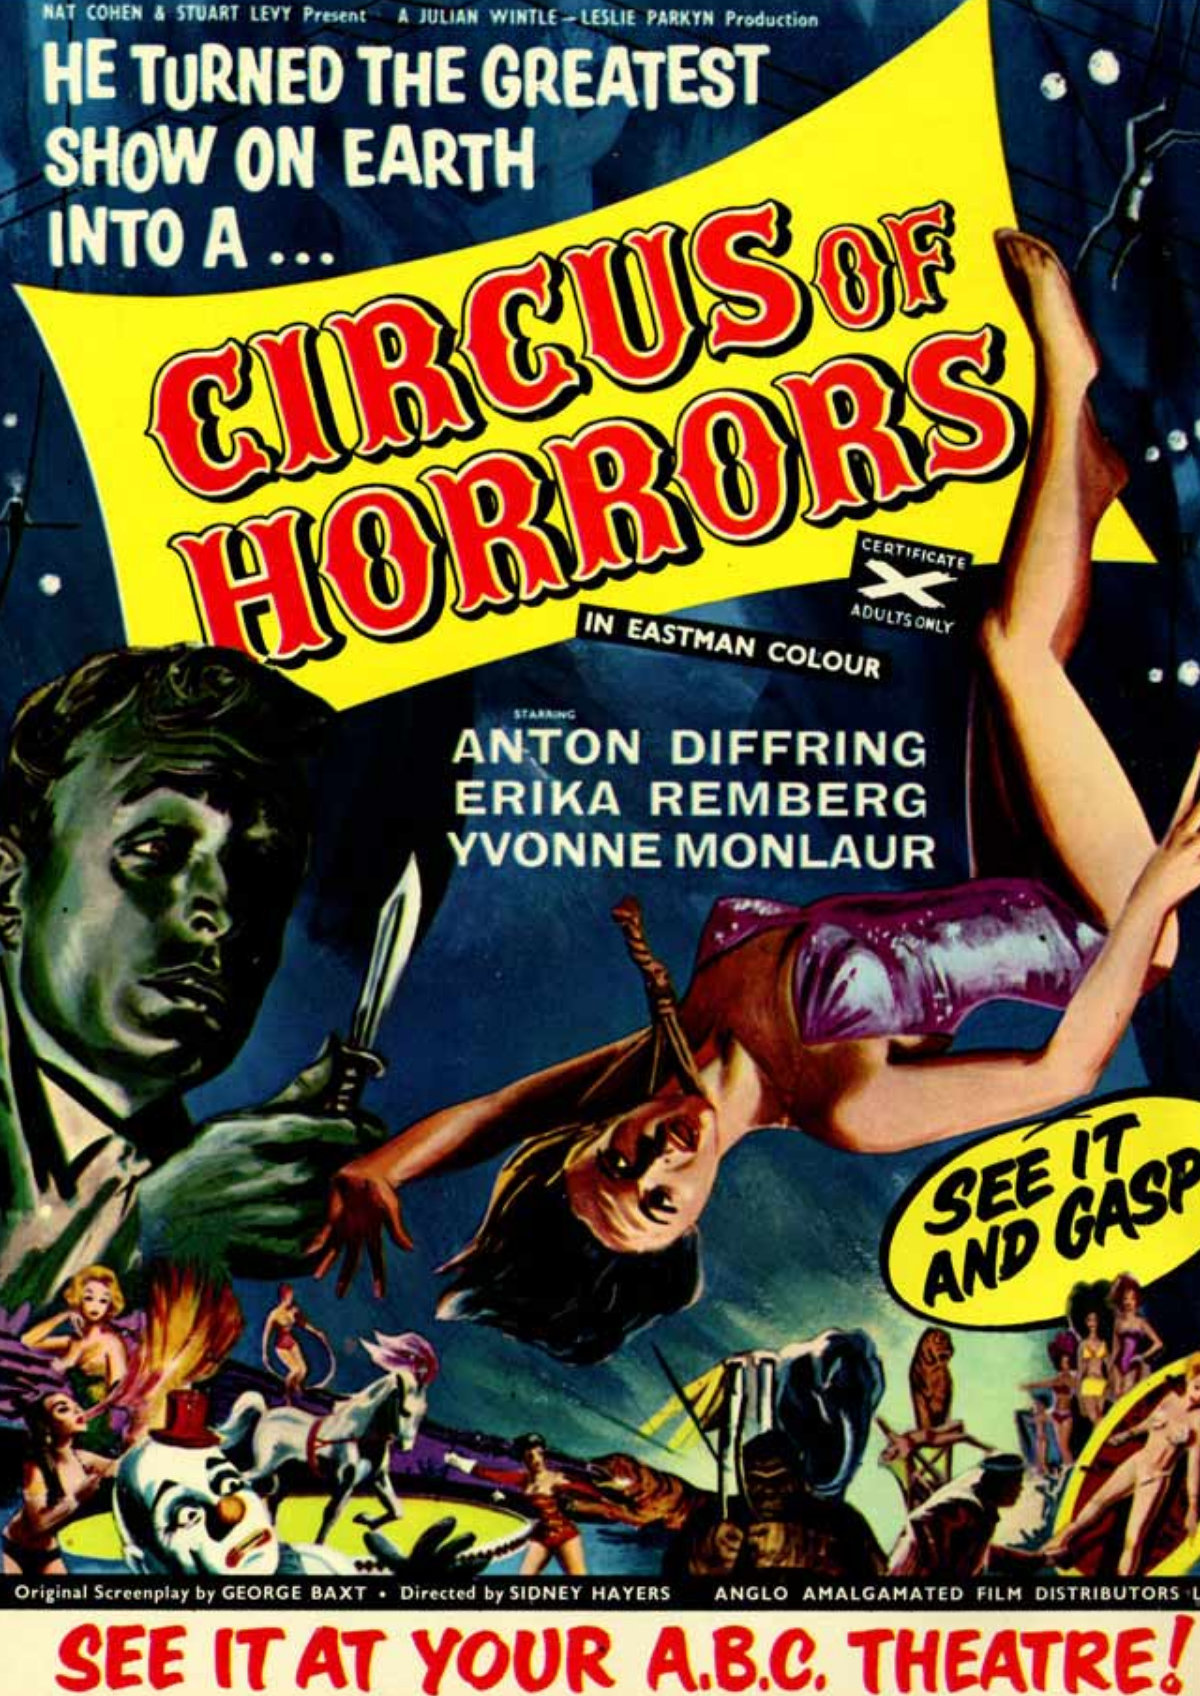 'Circus Of Horrors' movie poster